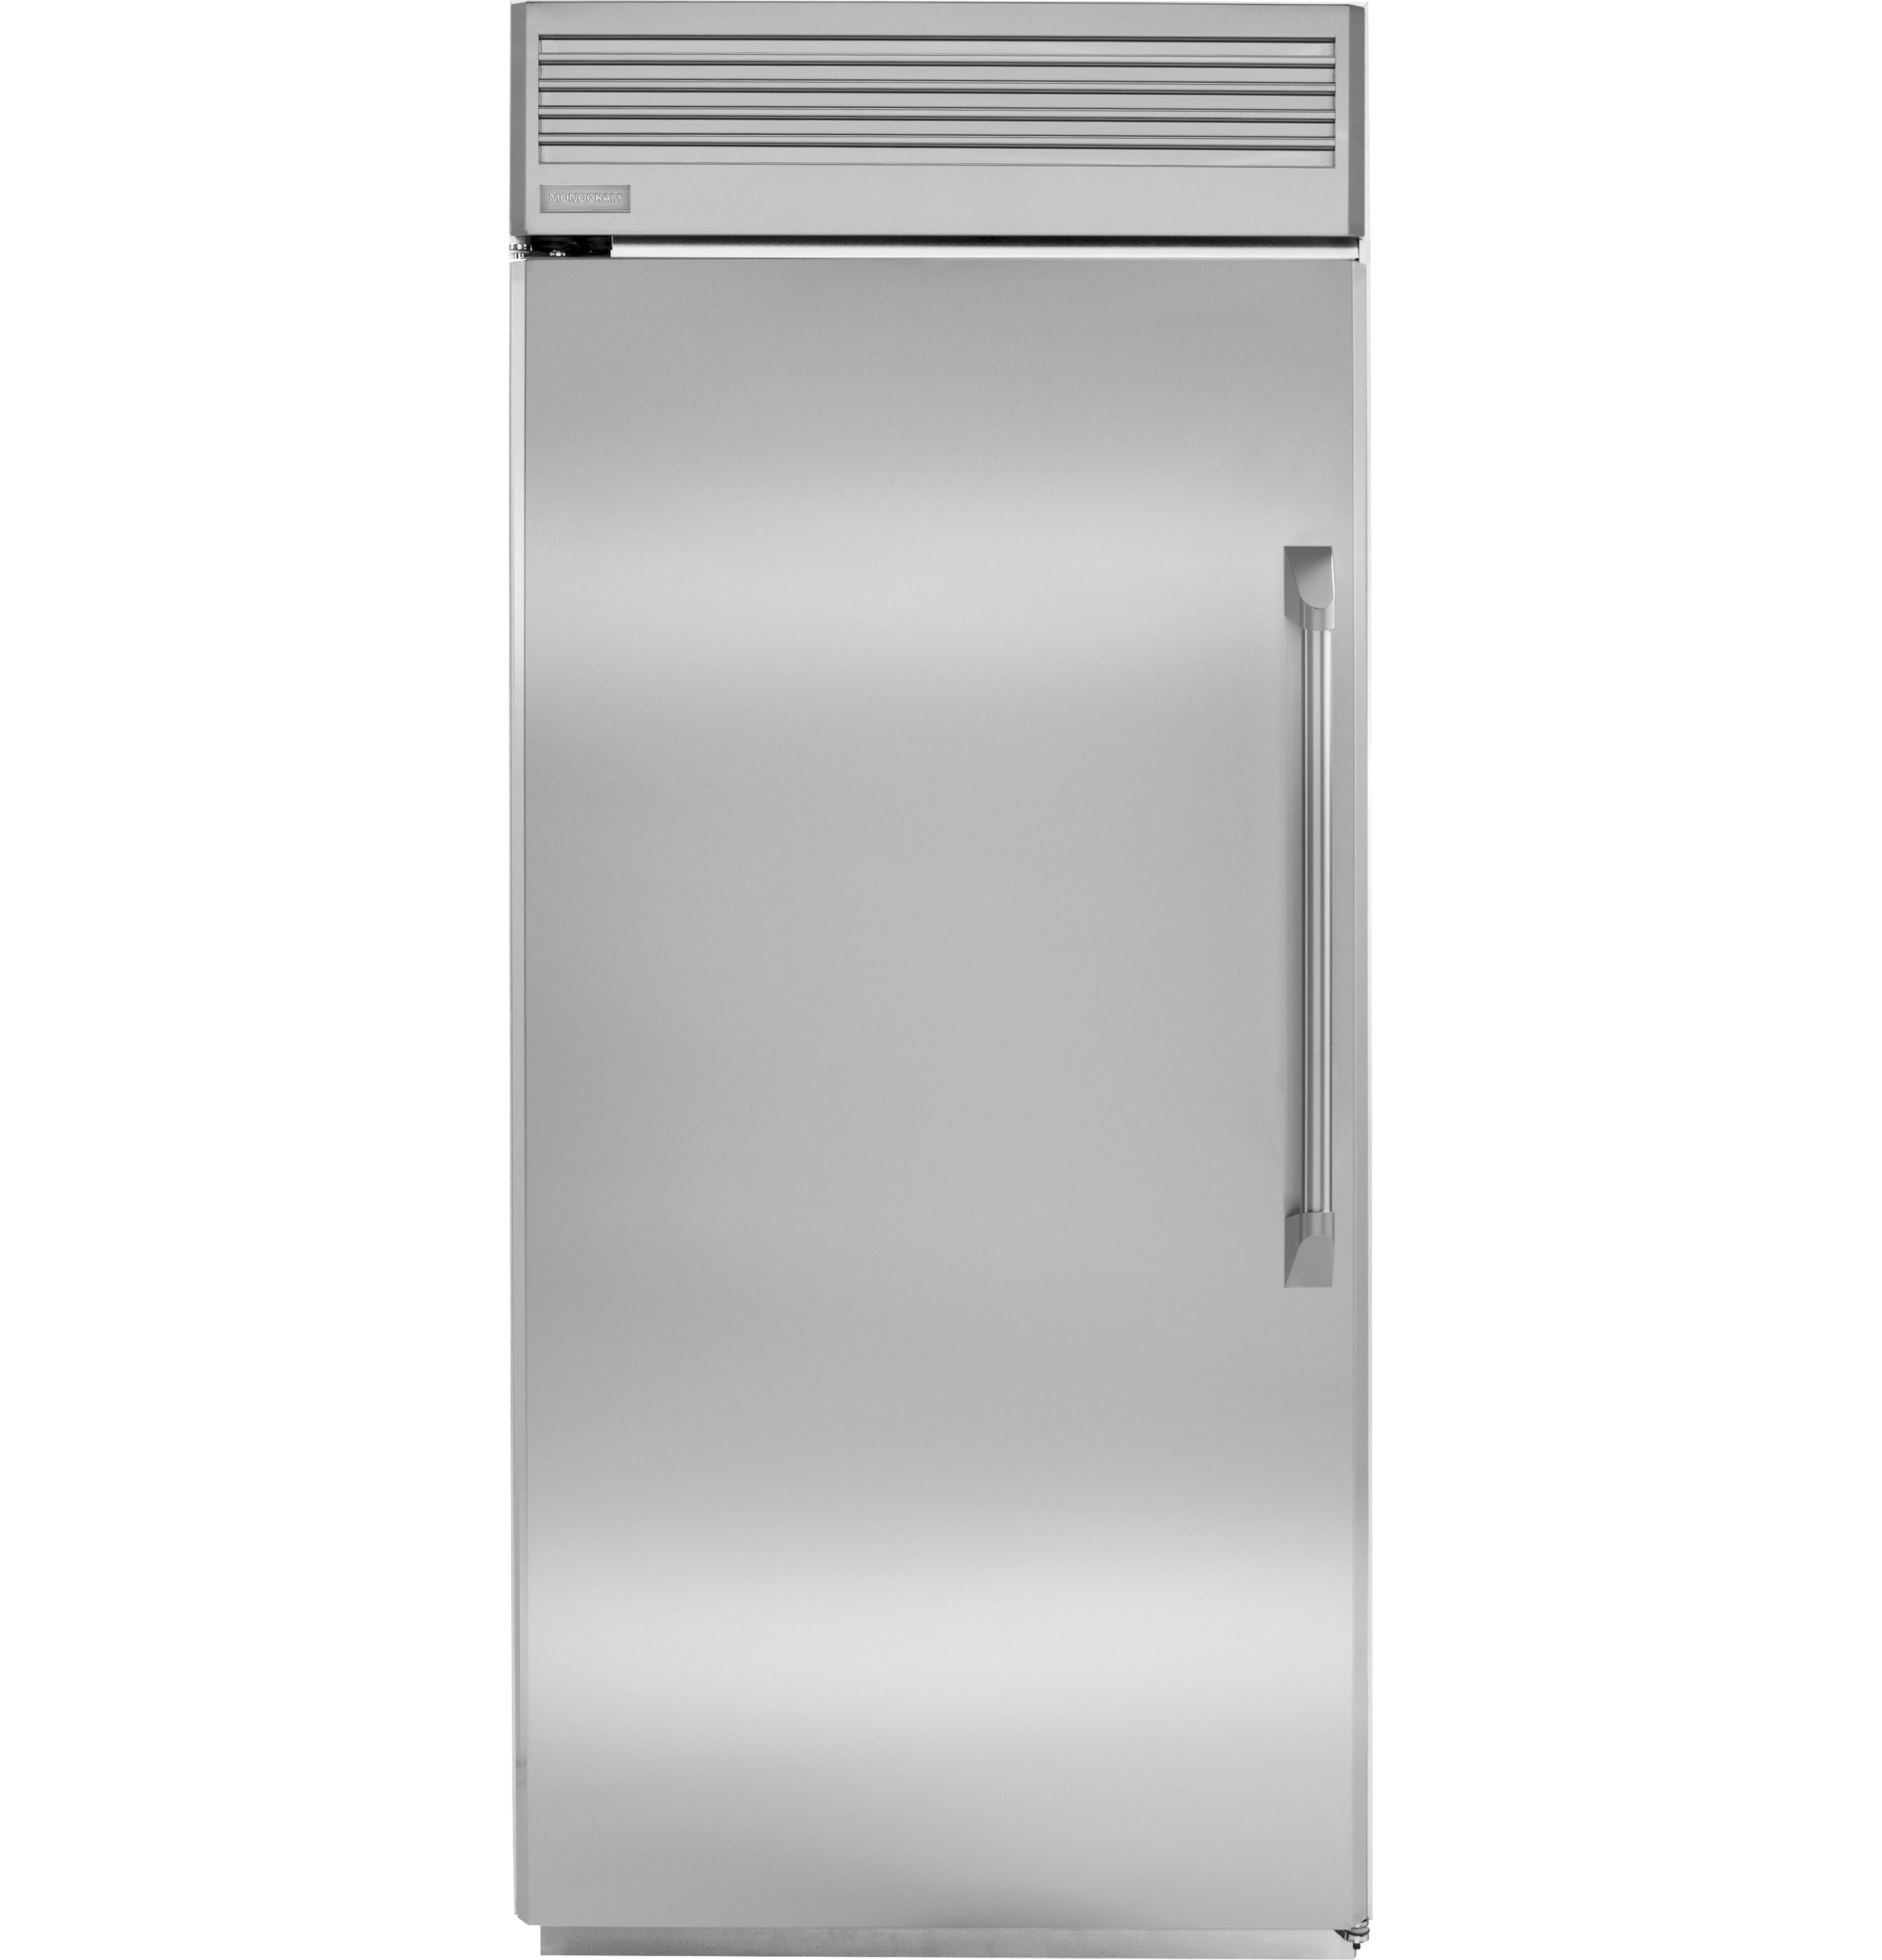 36 Refrigerators Zirp360nhrh Monogram 36 Professional Built In All Refrigerator